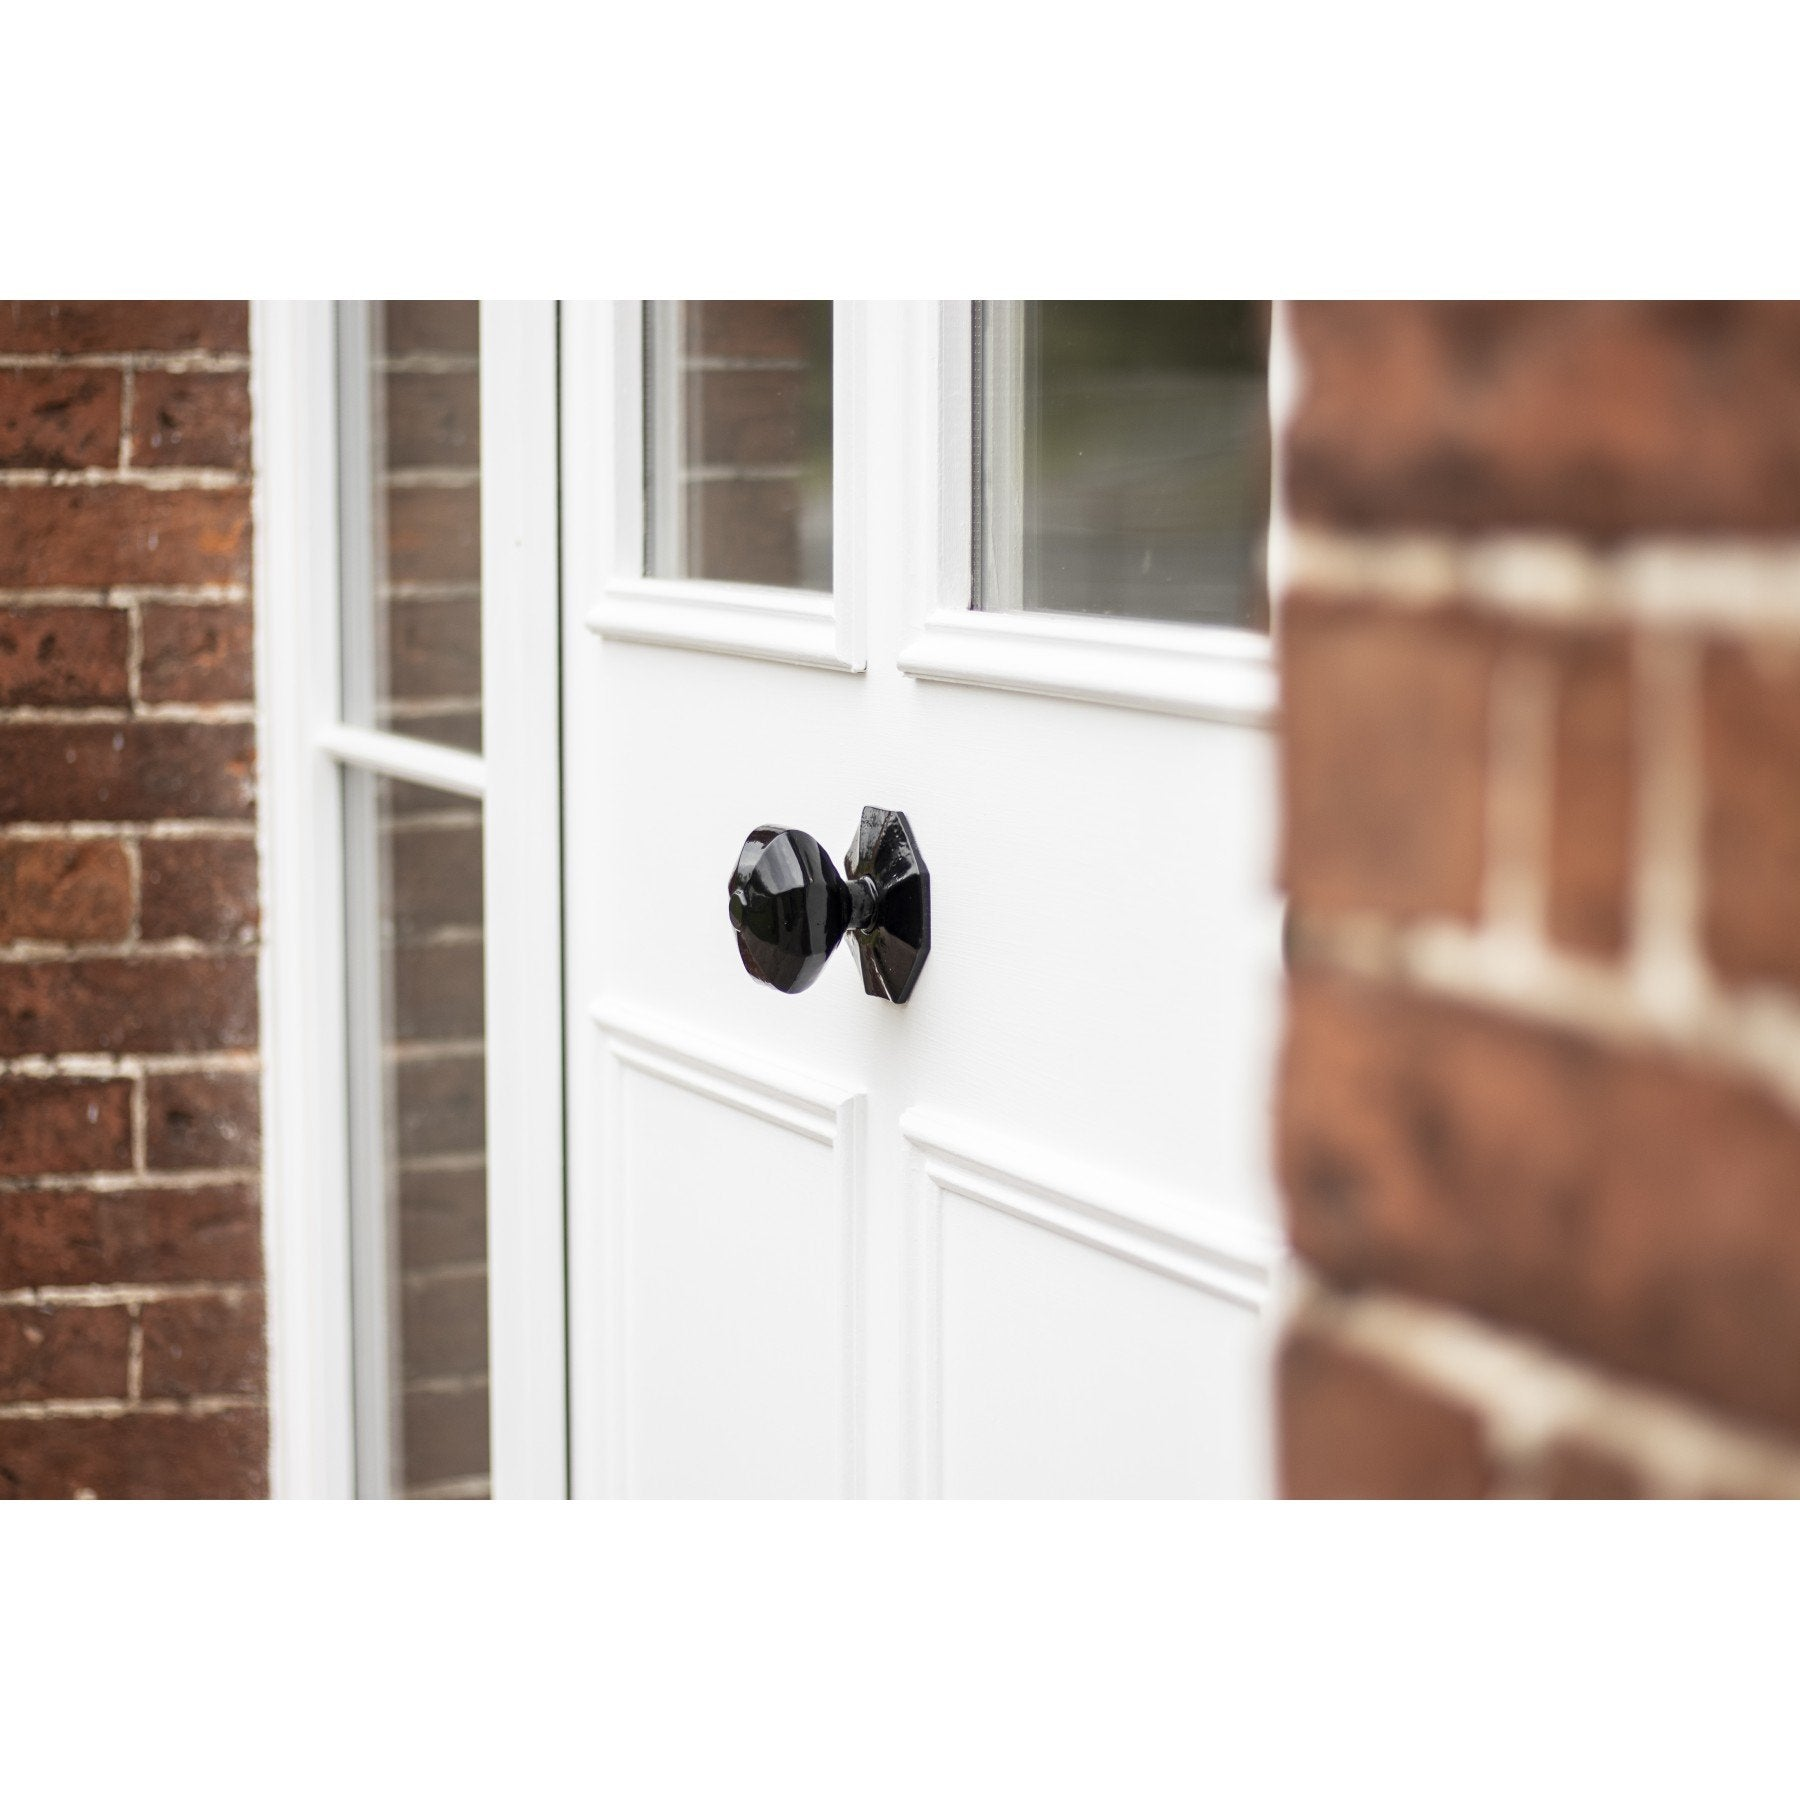 Octagonal Centre Door Knob - Black - No.42 Interiors